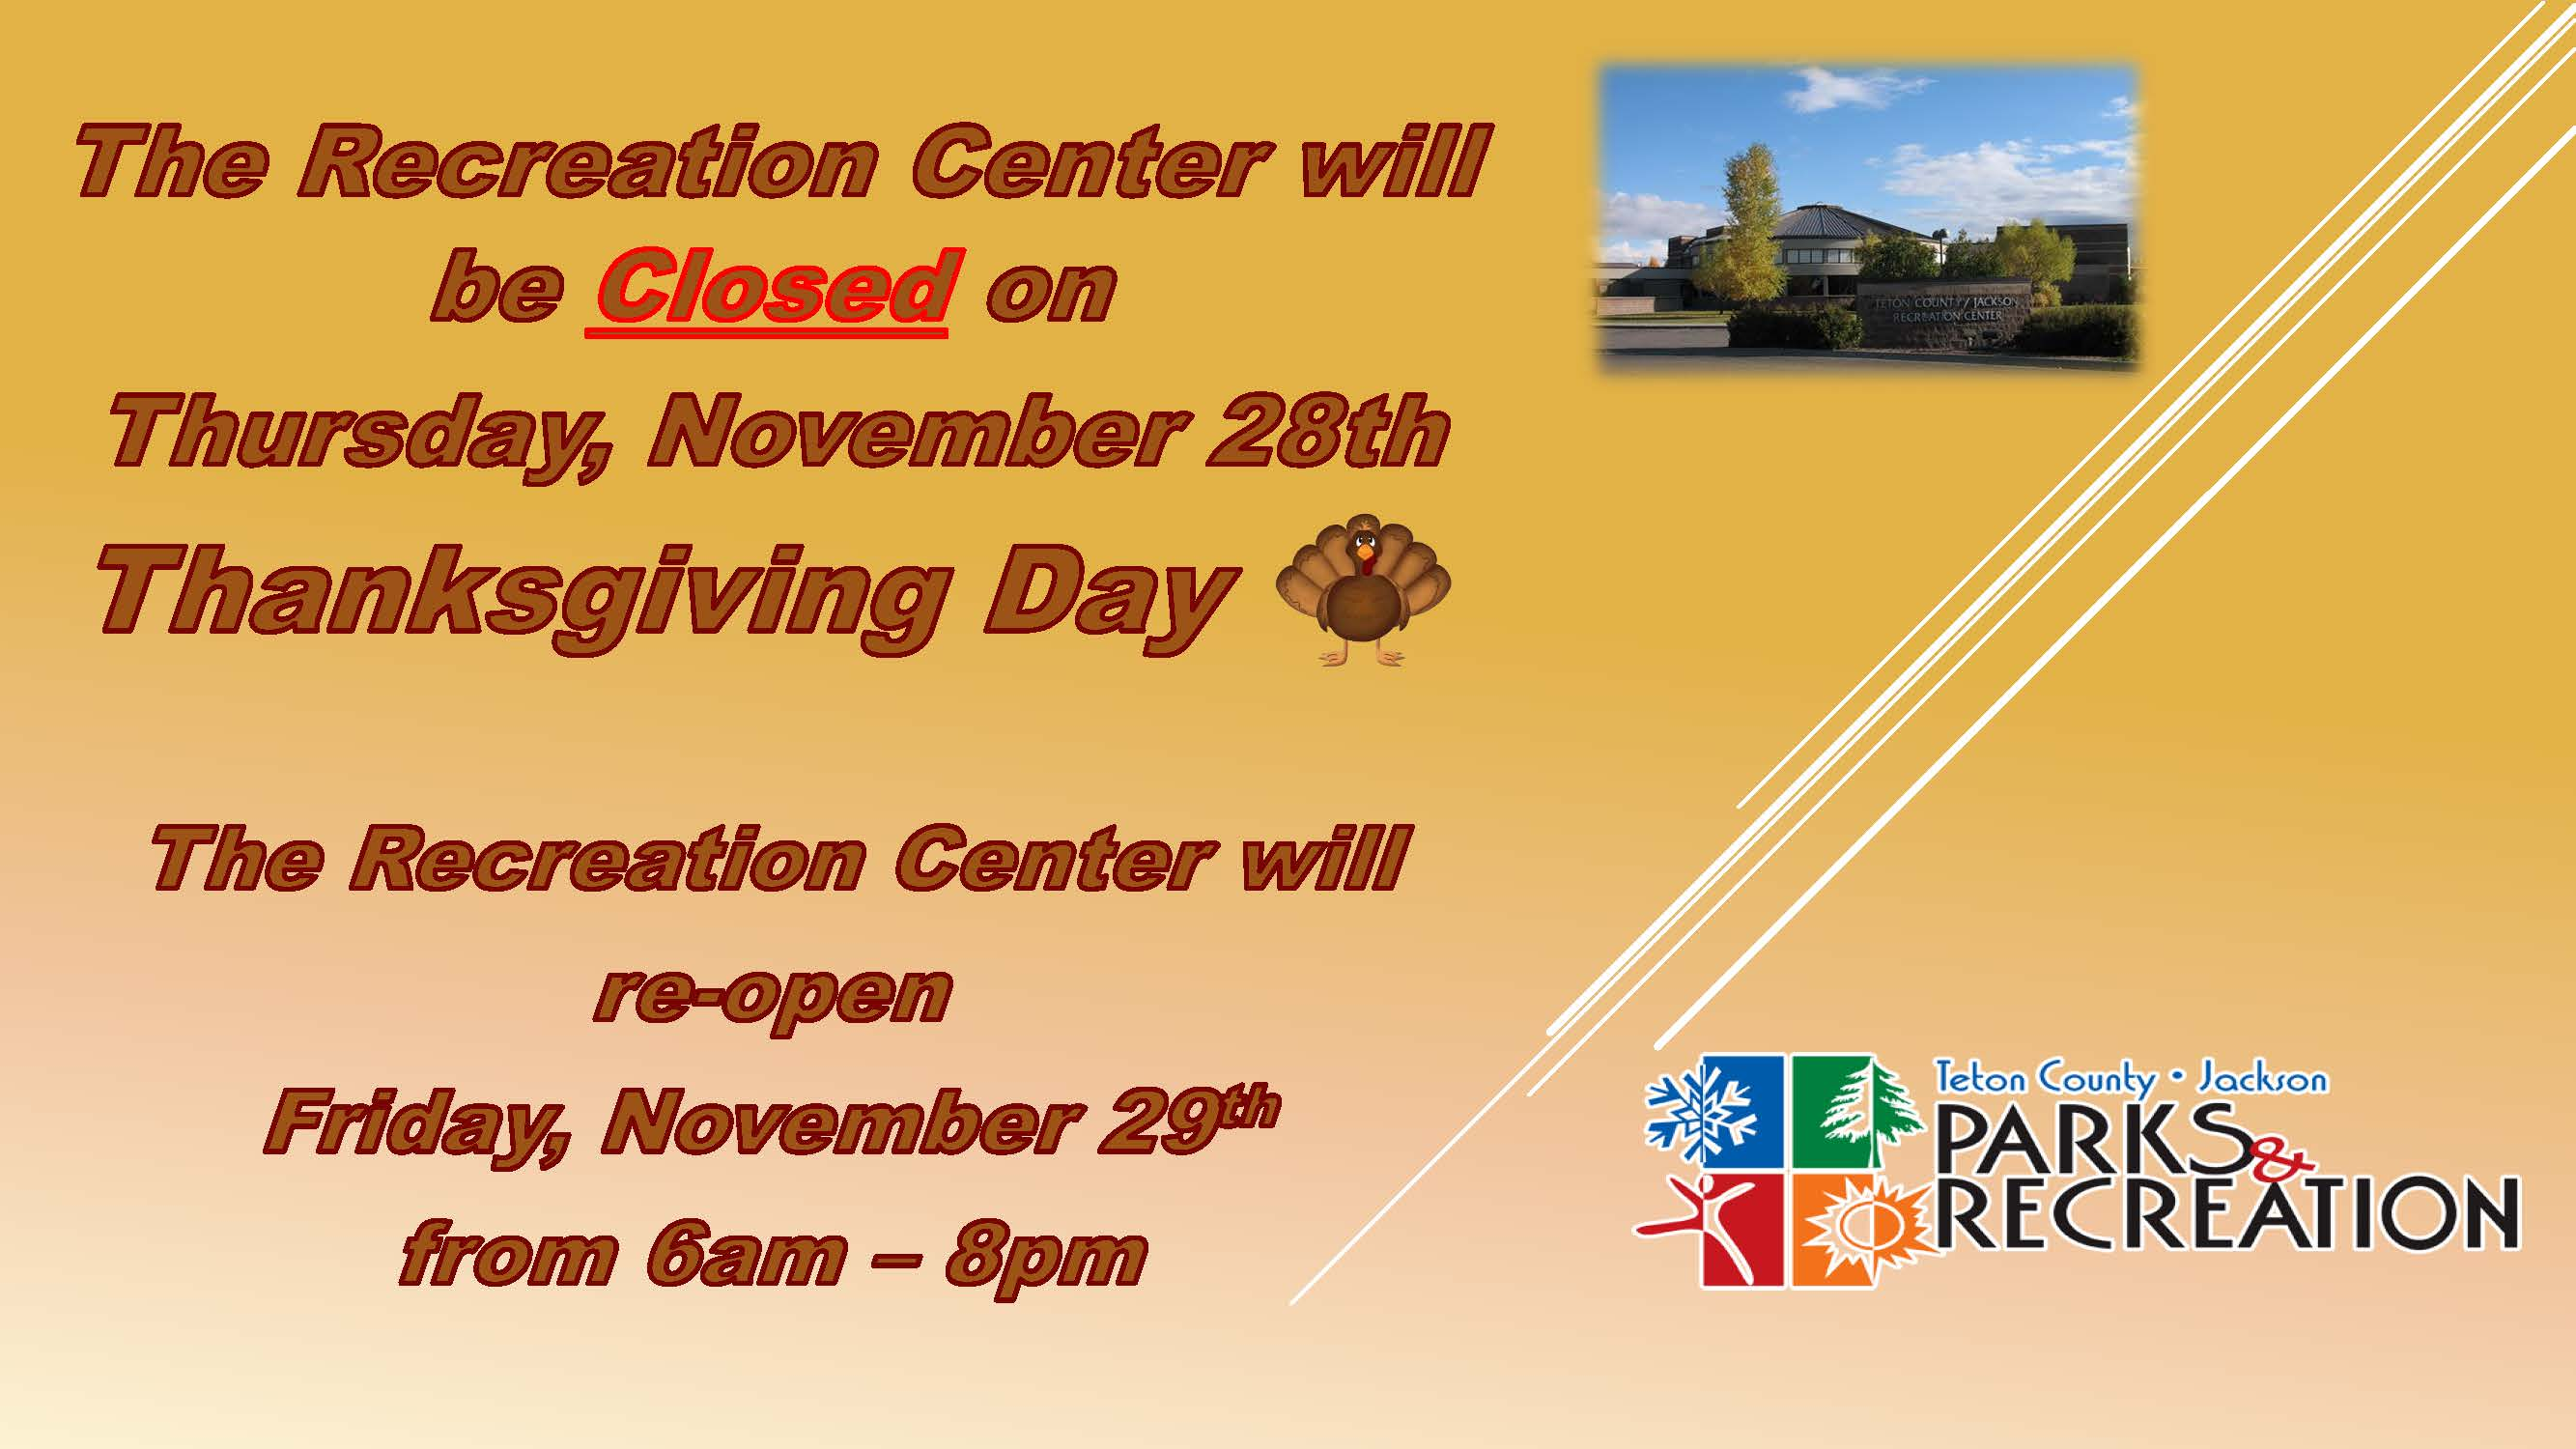 Recreation Center Closure - Thanksgiving Day  Nov 28 2019 - Web and Social Media Flier (003)